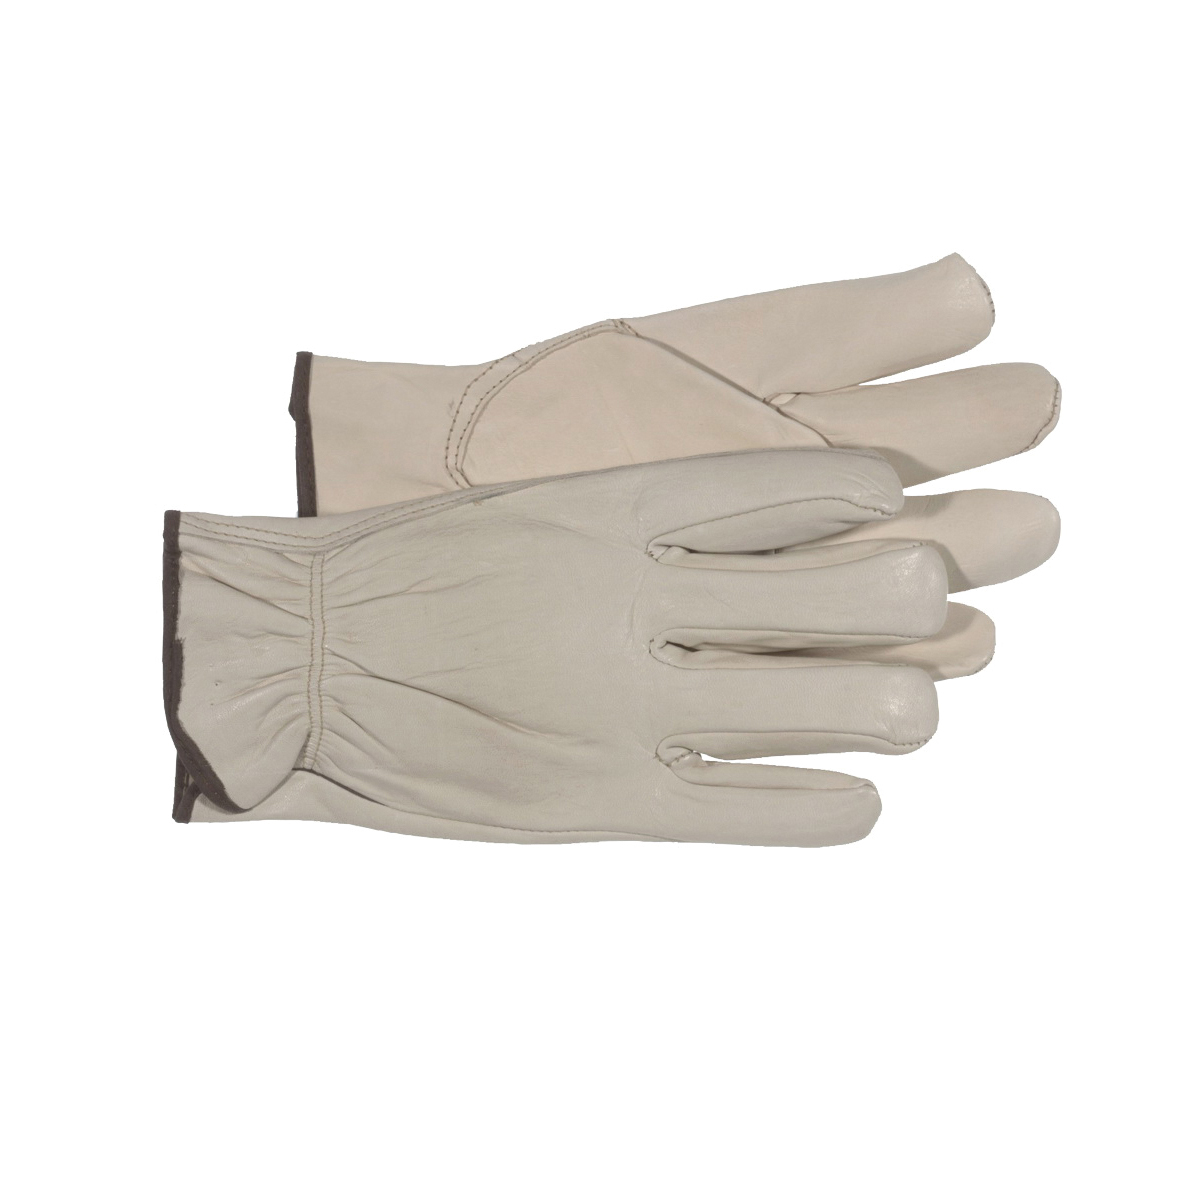 Picture of BOSS 40672X Driver Gloves, Men's, 2XL, Keystone Thumb, Open, Shirred Elastic Back Cuff, Cowhide Leather, Natural